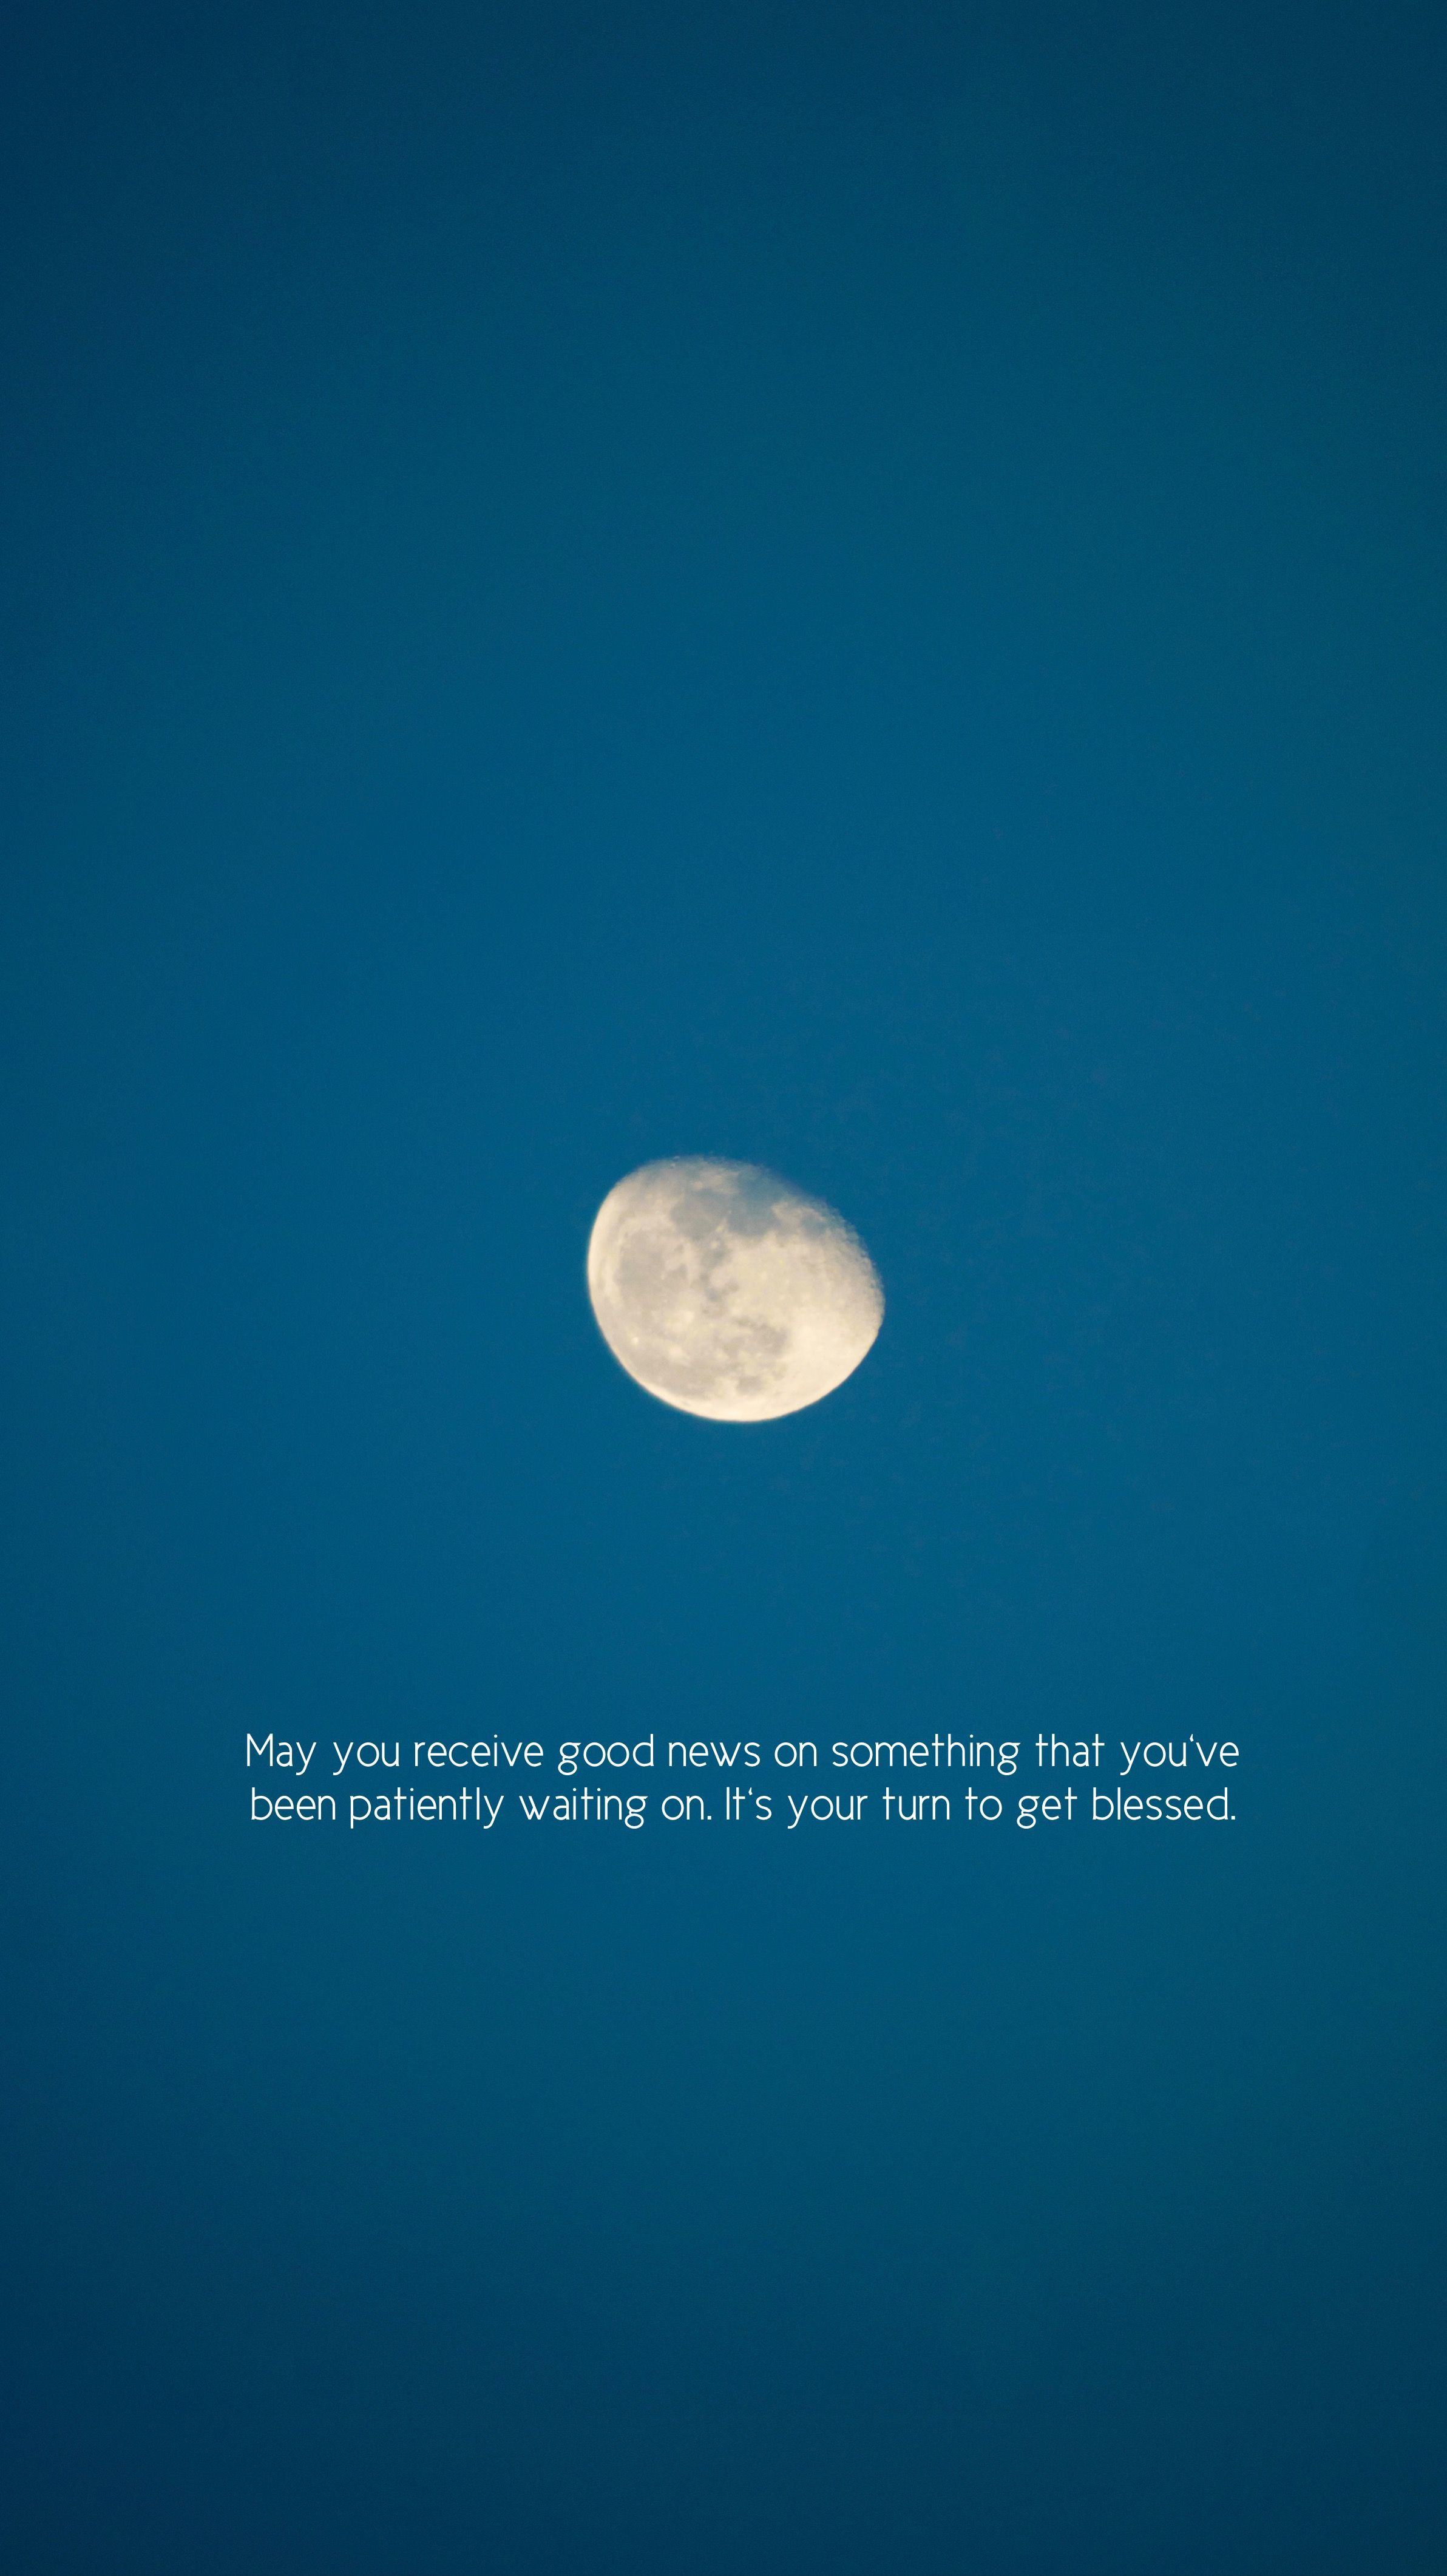 Moon Sayings Proverbs : sayings, proverbs, Quotes, Quotes,